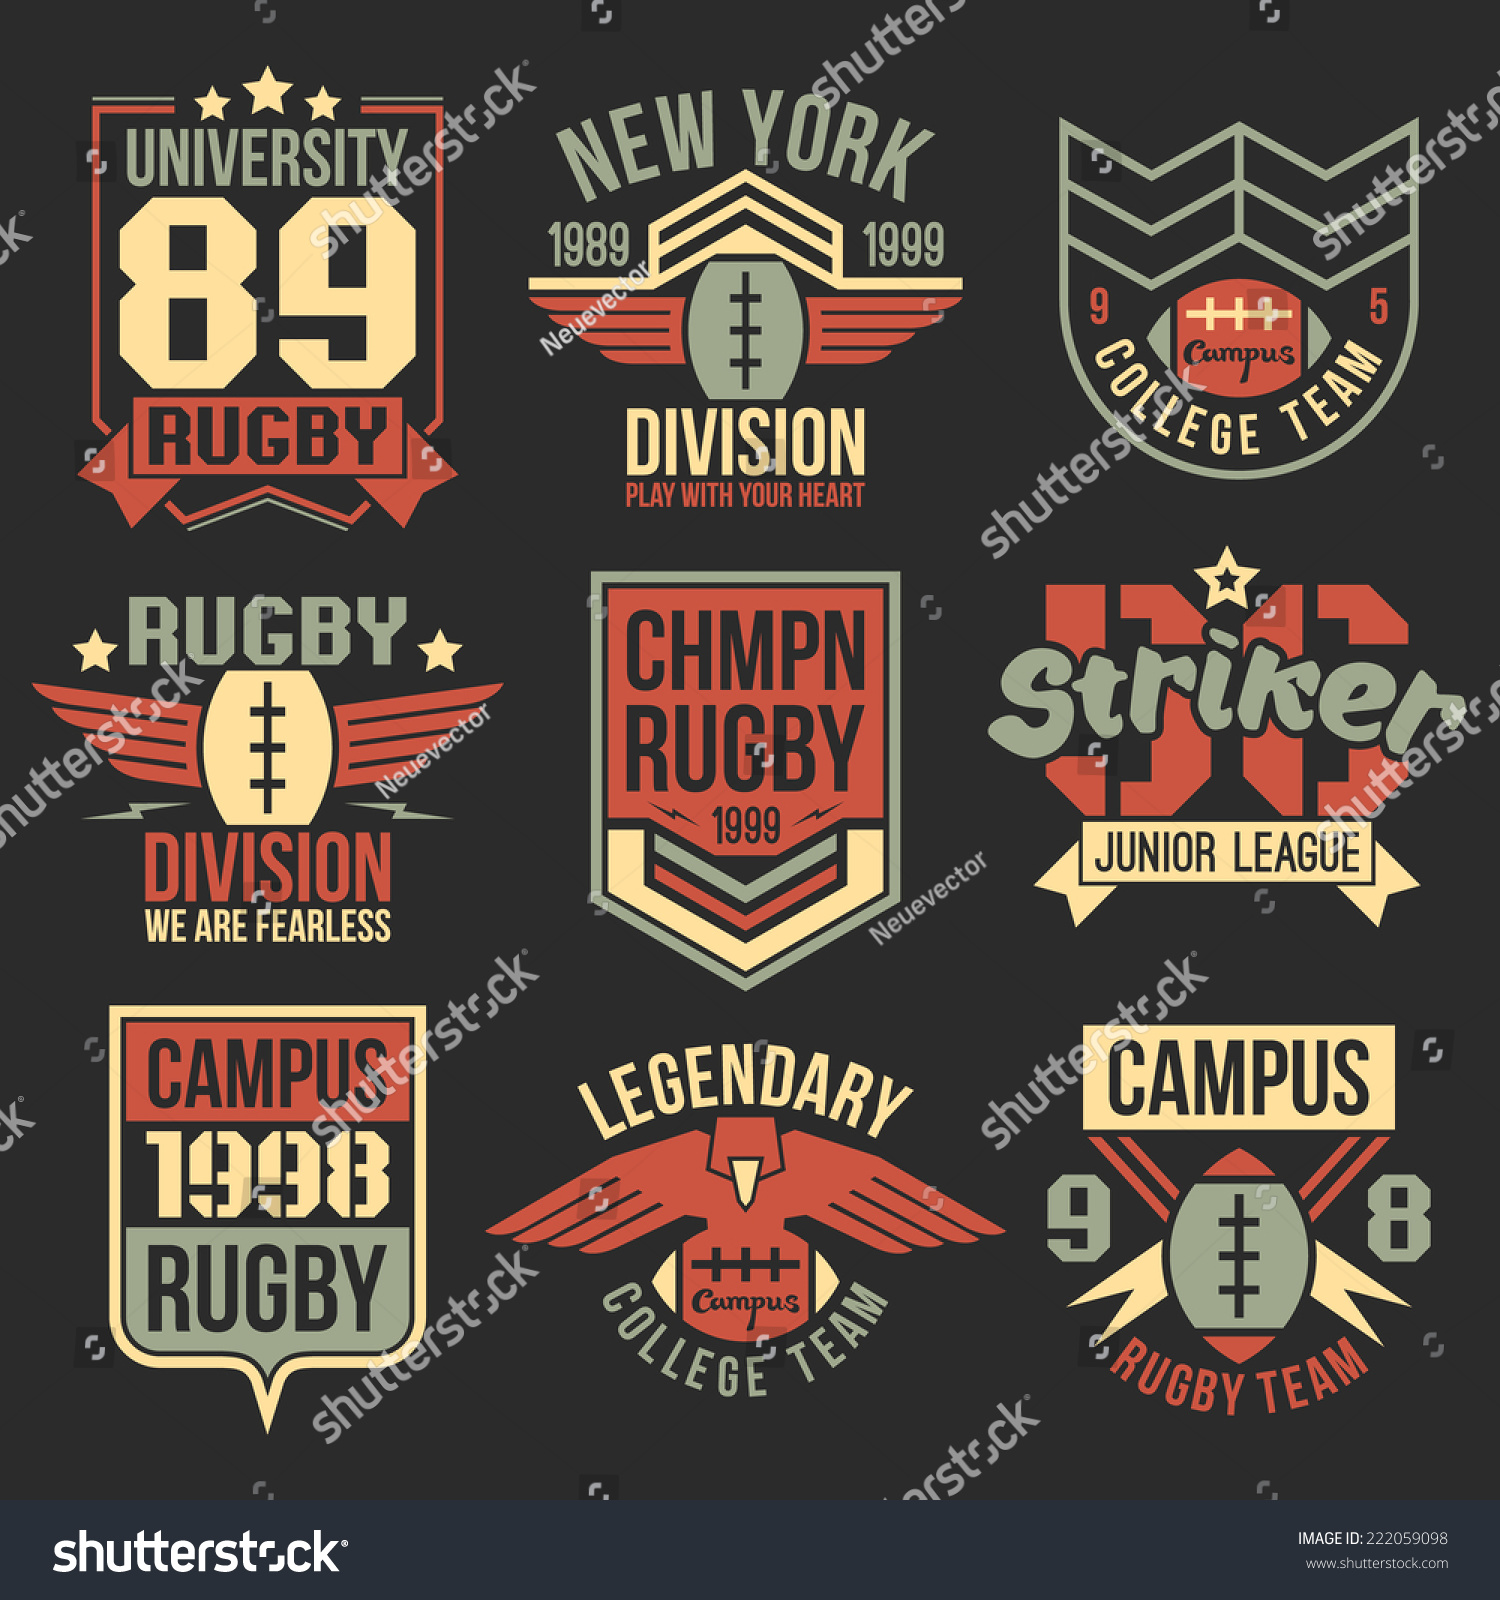 Shirt design graphics - College Rugby Team Emblems In Retro Vintage Style Graphic Design For T Shirt